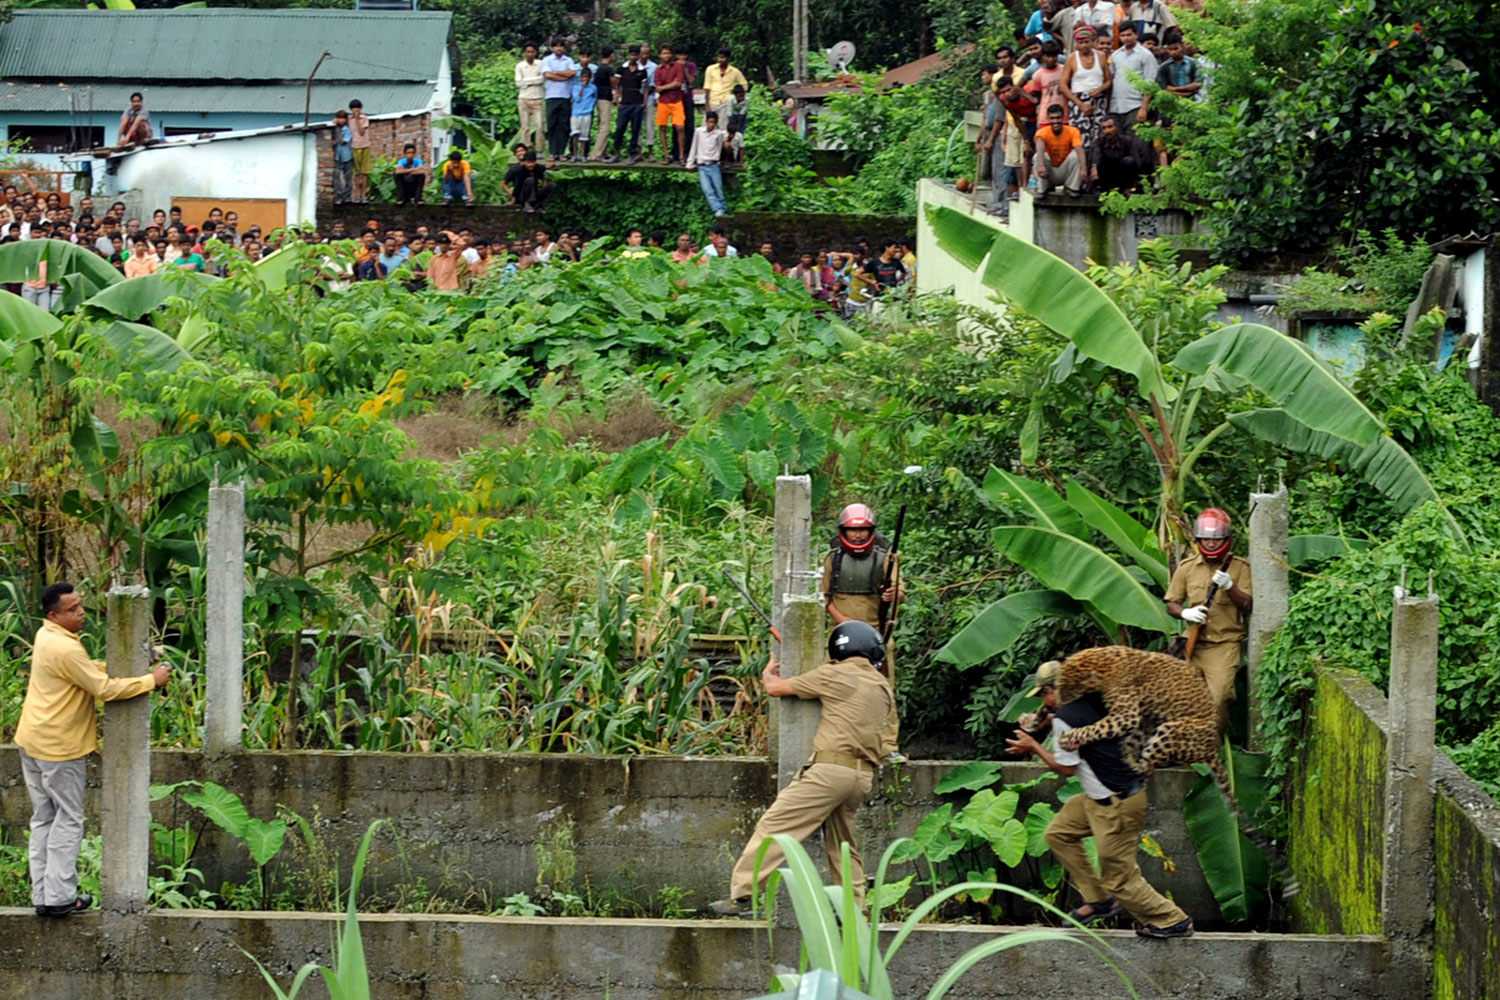 July 19, 2011. A leopard attacks a forest guard at Prakash Nagar village near Salugara on the outskirts of Siliguri. Six people were mauled by the leopard after the feline strayed into the village area before it was caught by forestry department officials.